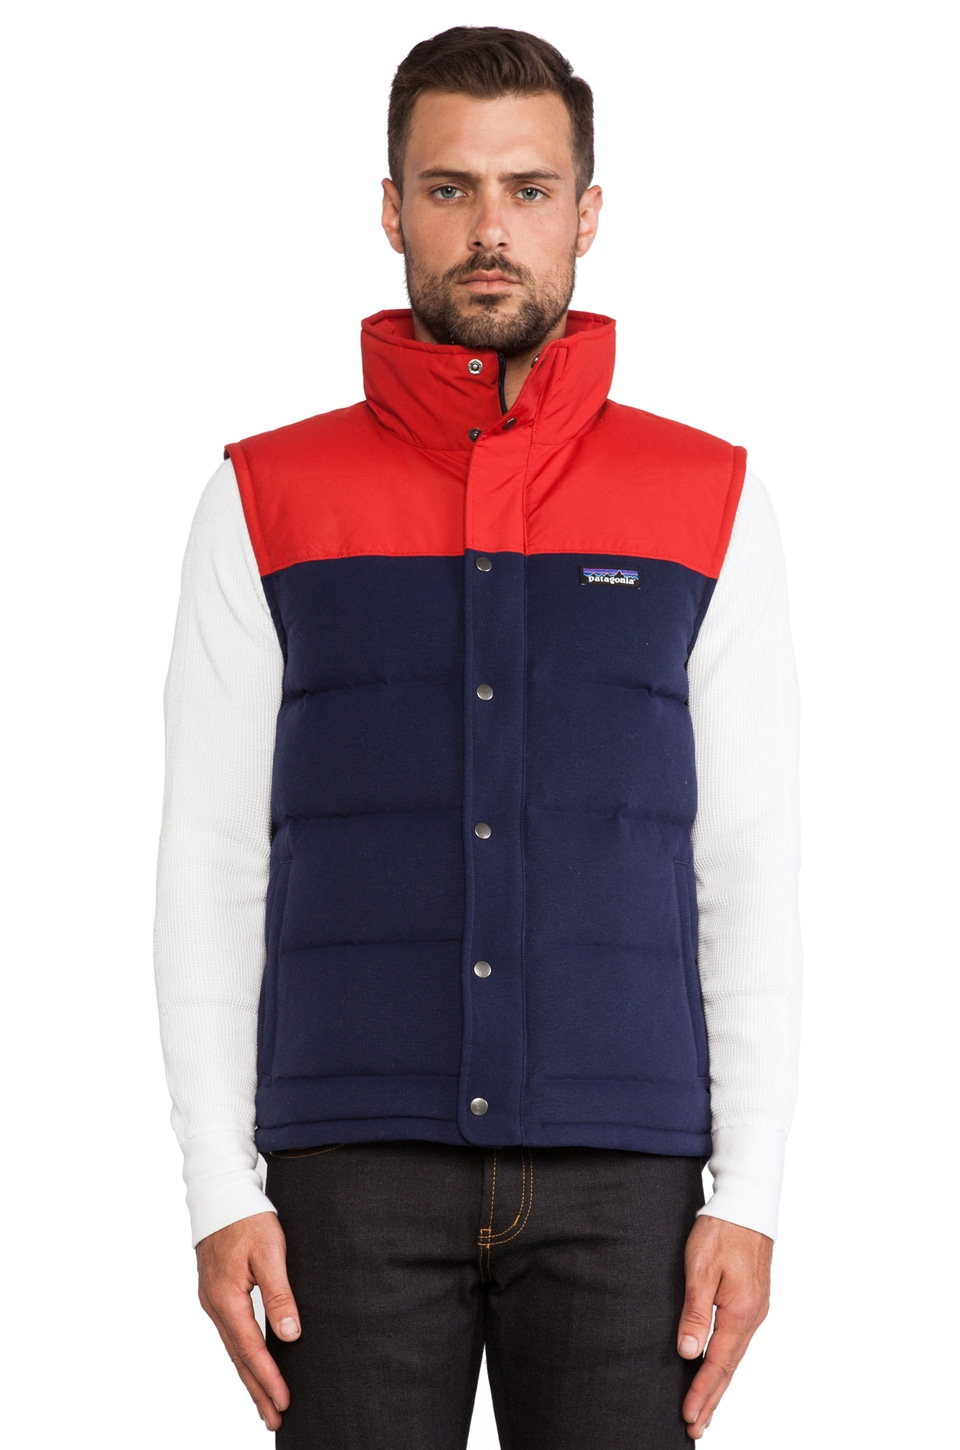 Patagonia Bivy Down Vest in Classic Navy & Cochineal Red